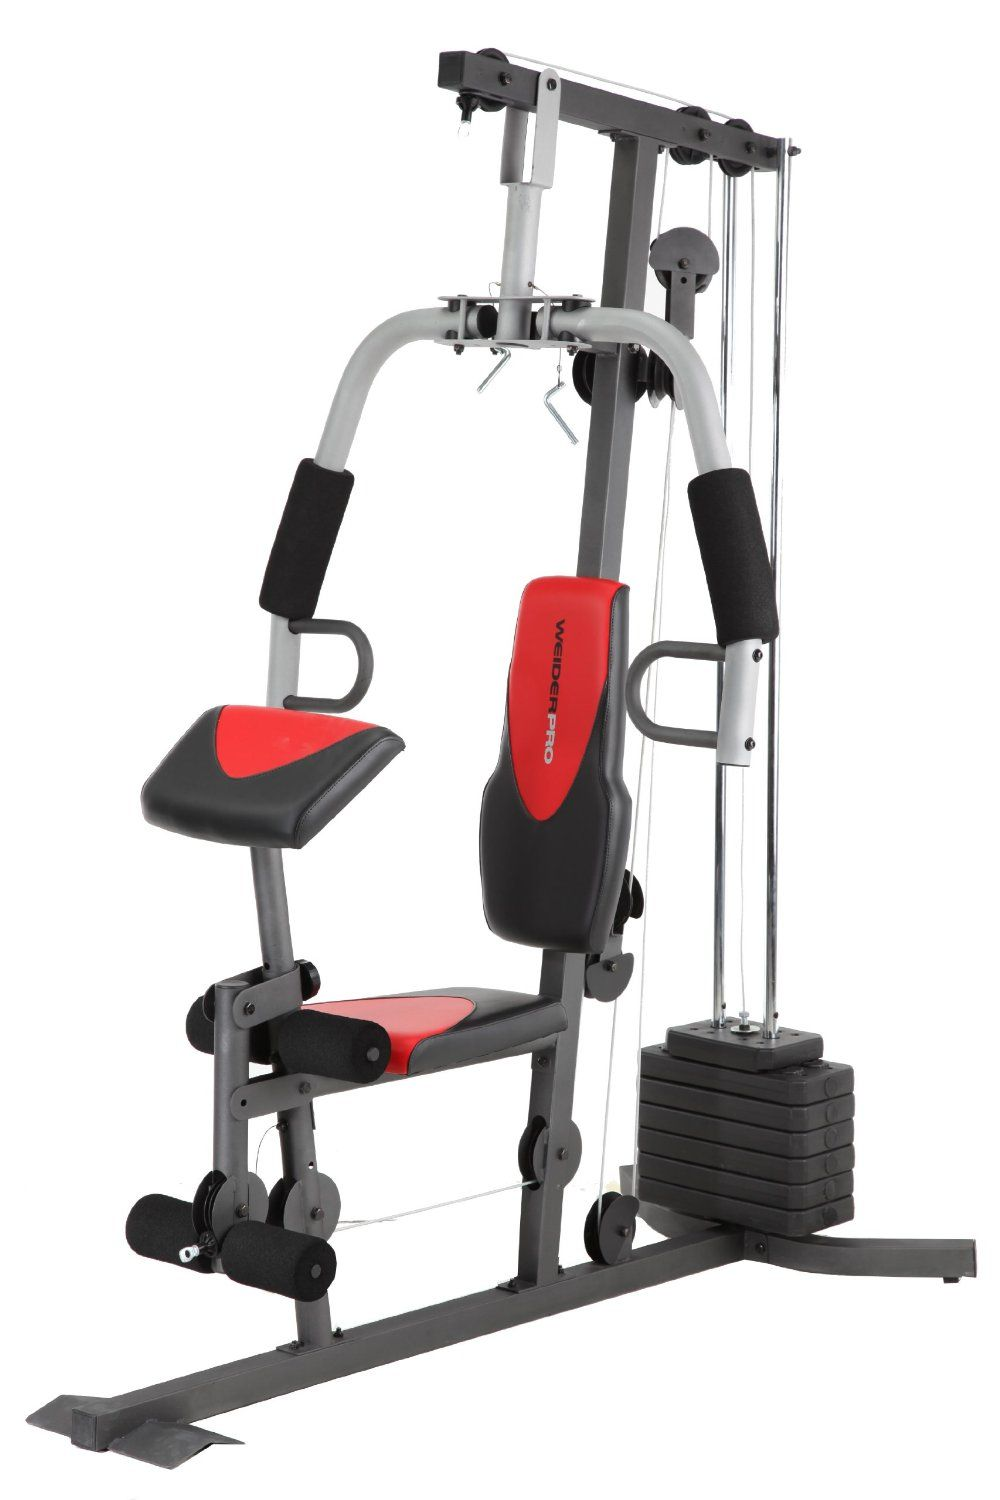 Weider weight system bayou fitness total trainer pilates